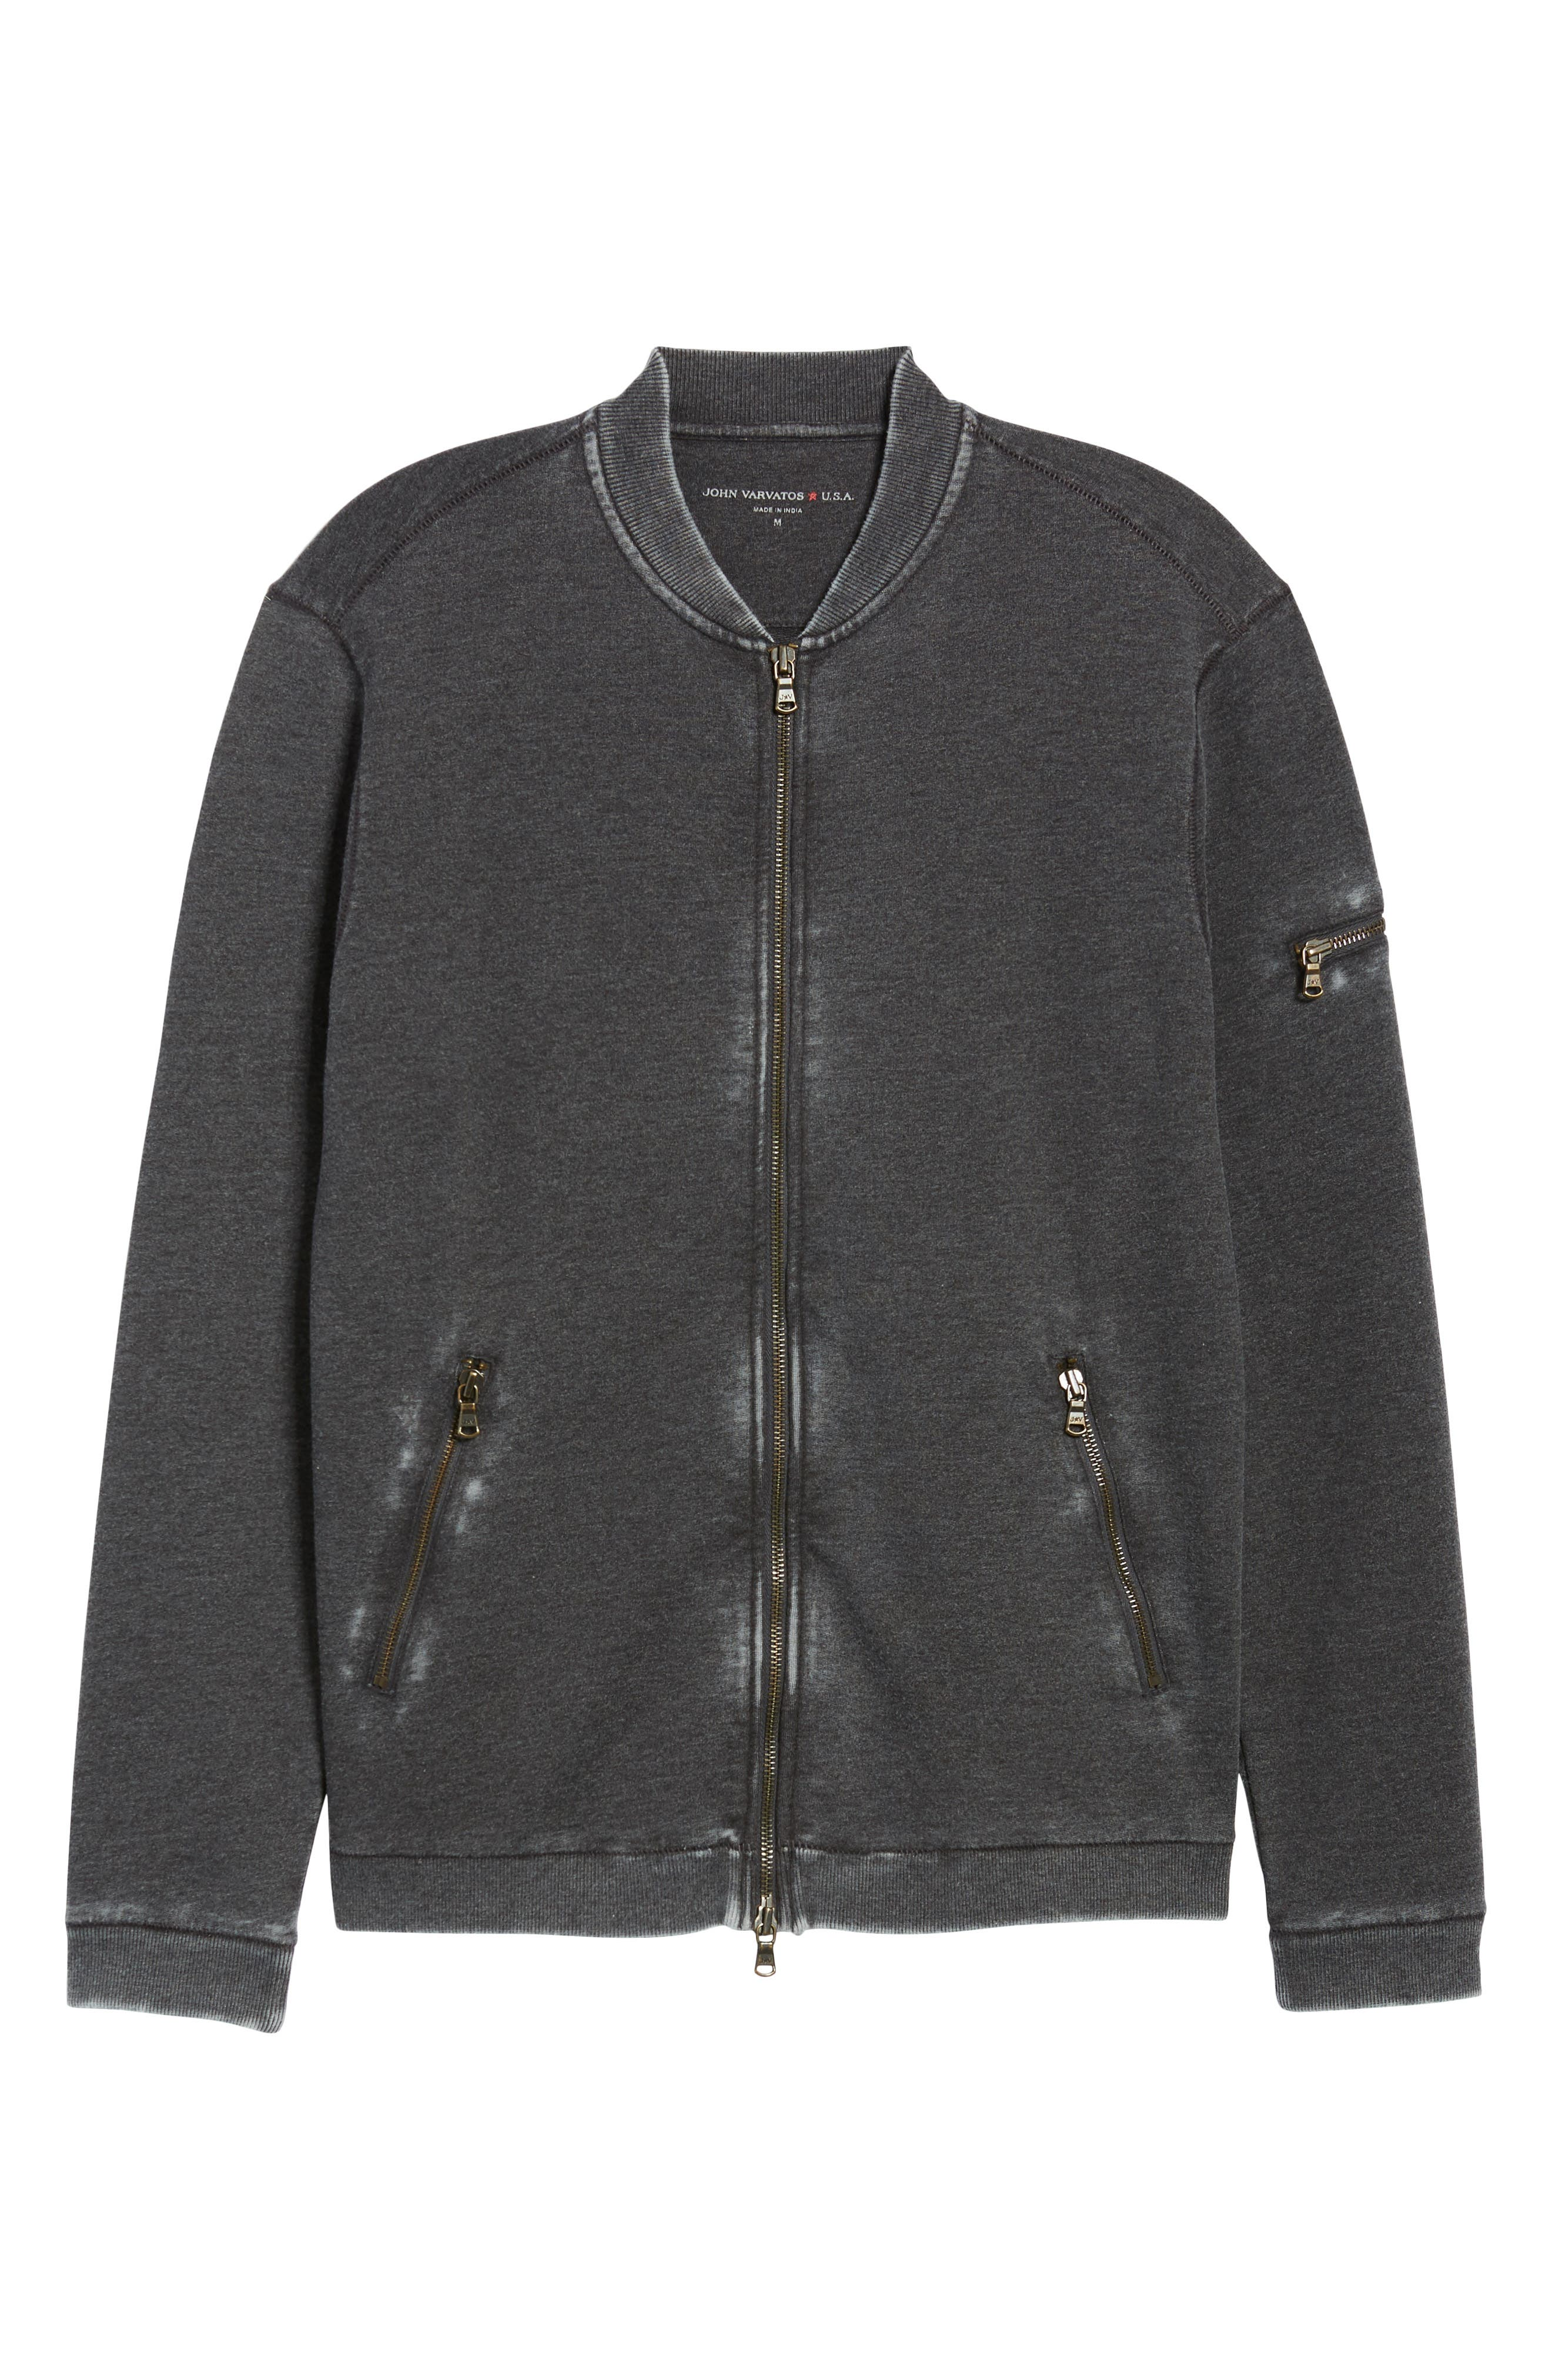 Burnout French Terry Zip Sweater,                             Alternate thumbnail 6, color,                             Metal Grey